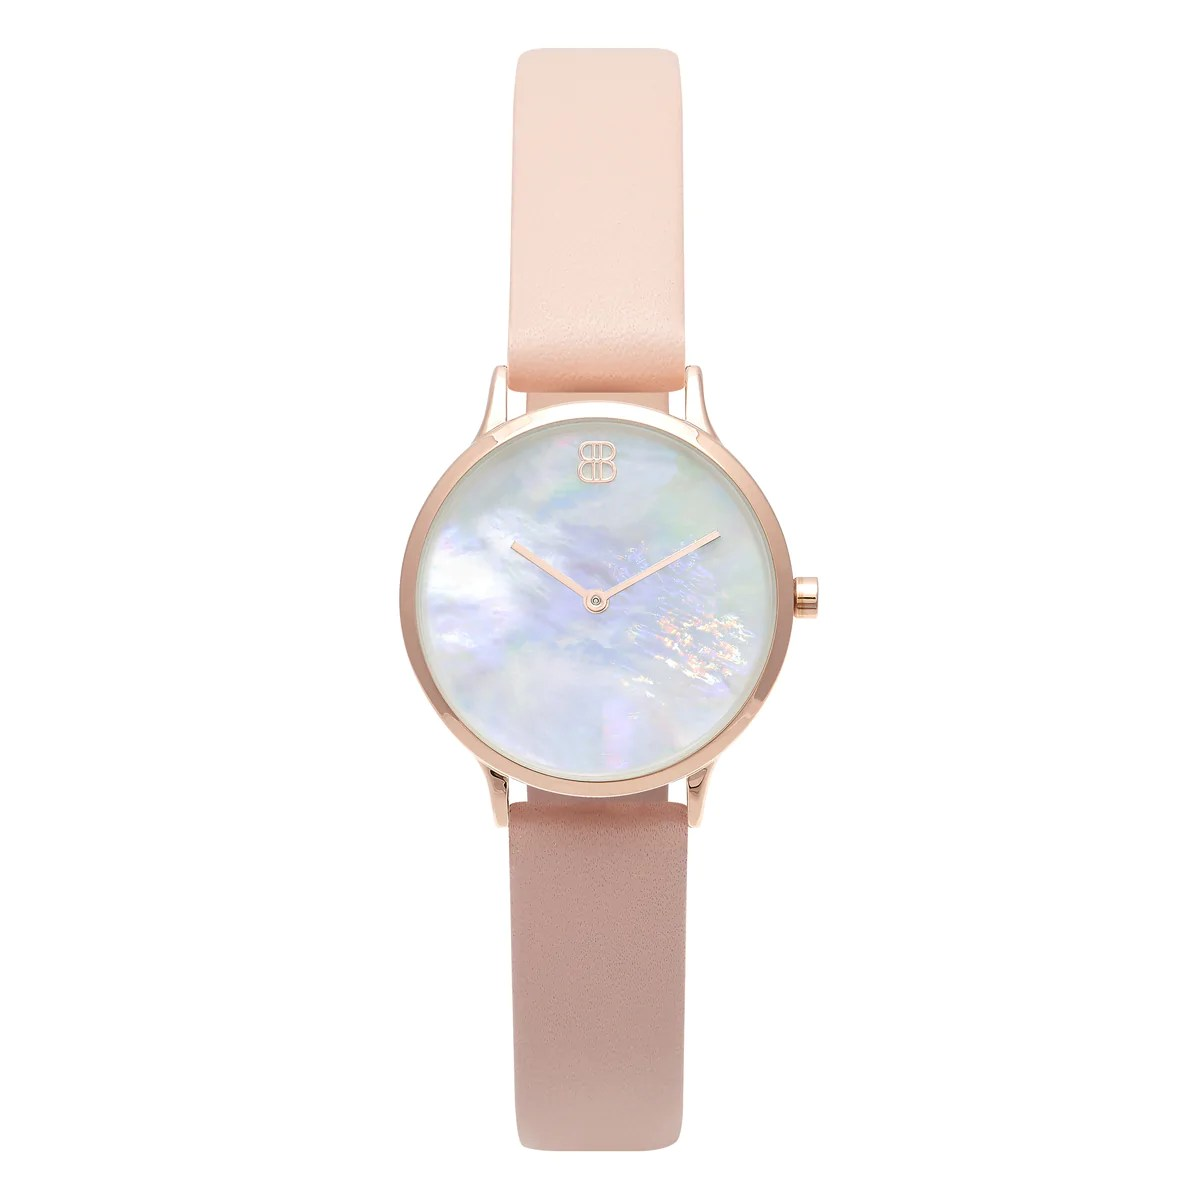 Leather Strap Rose Gold Watch Women S Small Rose Gold Watch White Pearl Dial Pink Leather Strap Mark 5 Mayfair 32mm